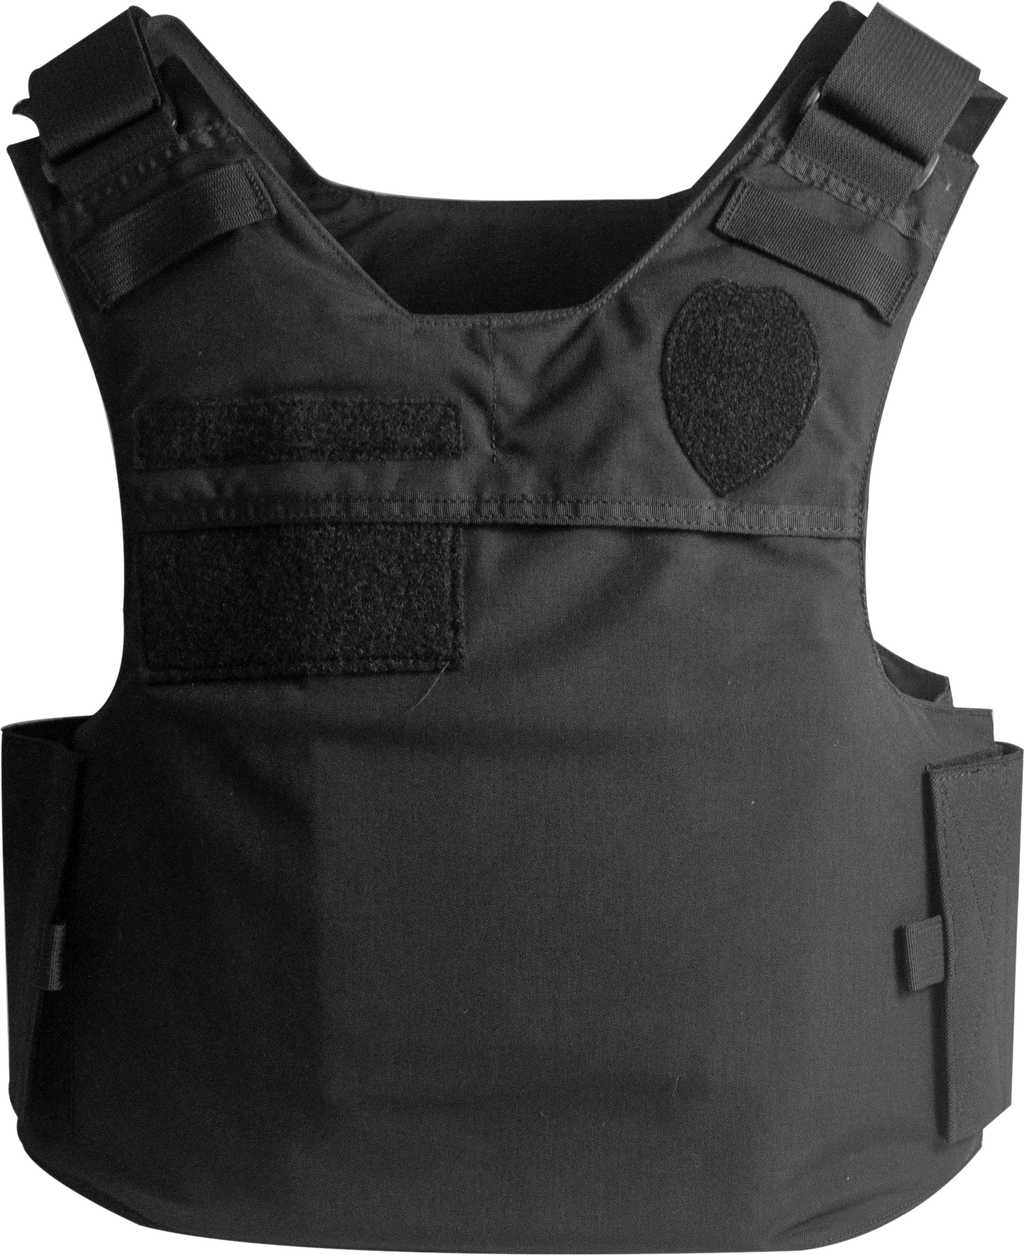 Ext Tact Vest K-COG Level IIIA 06